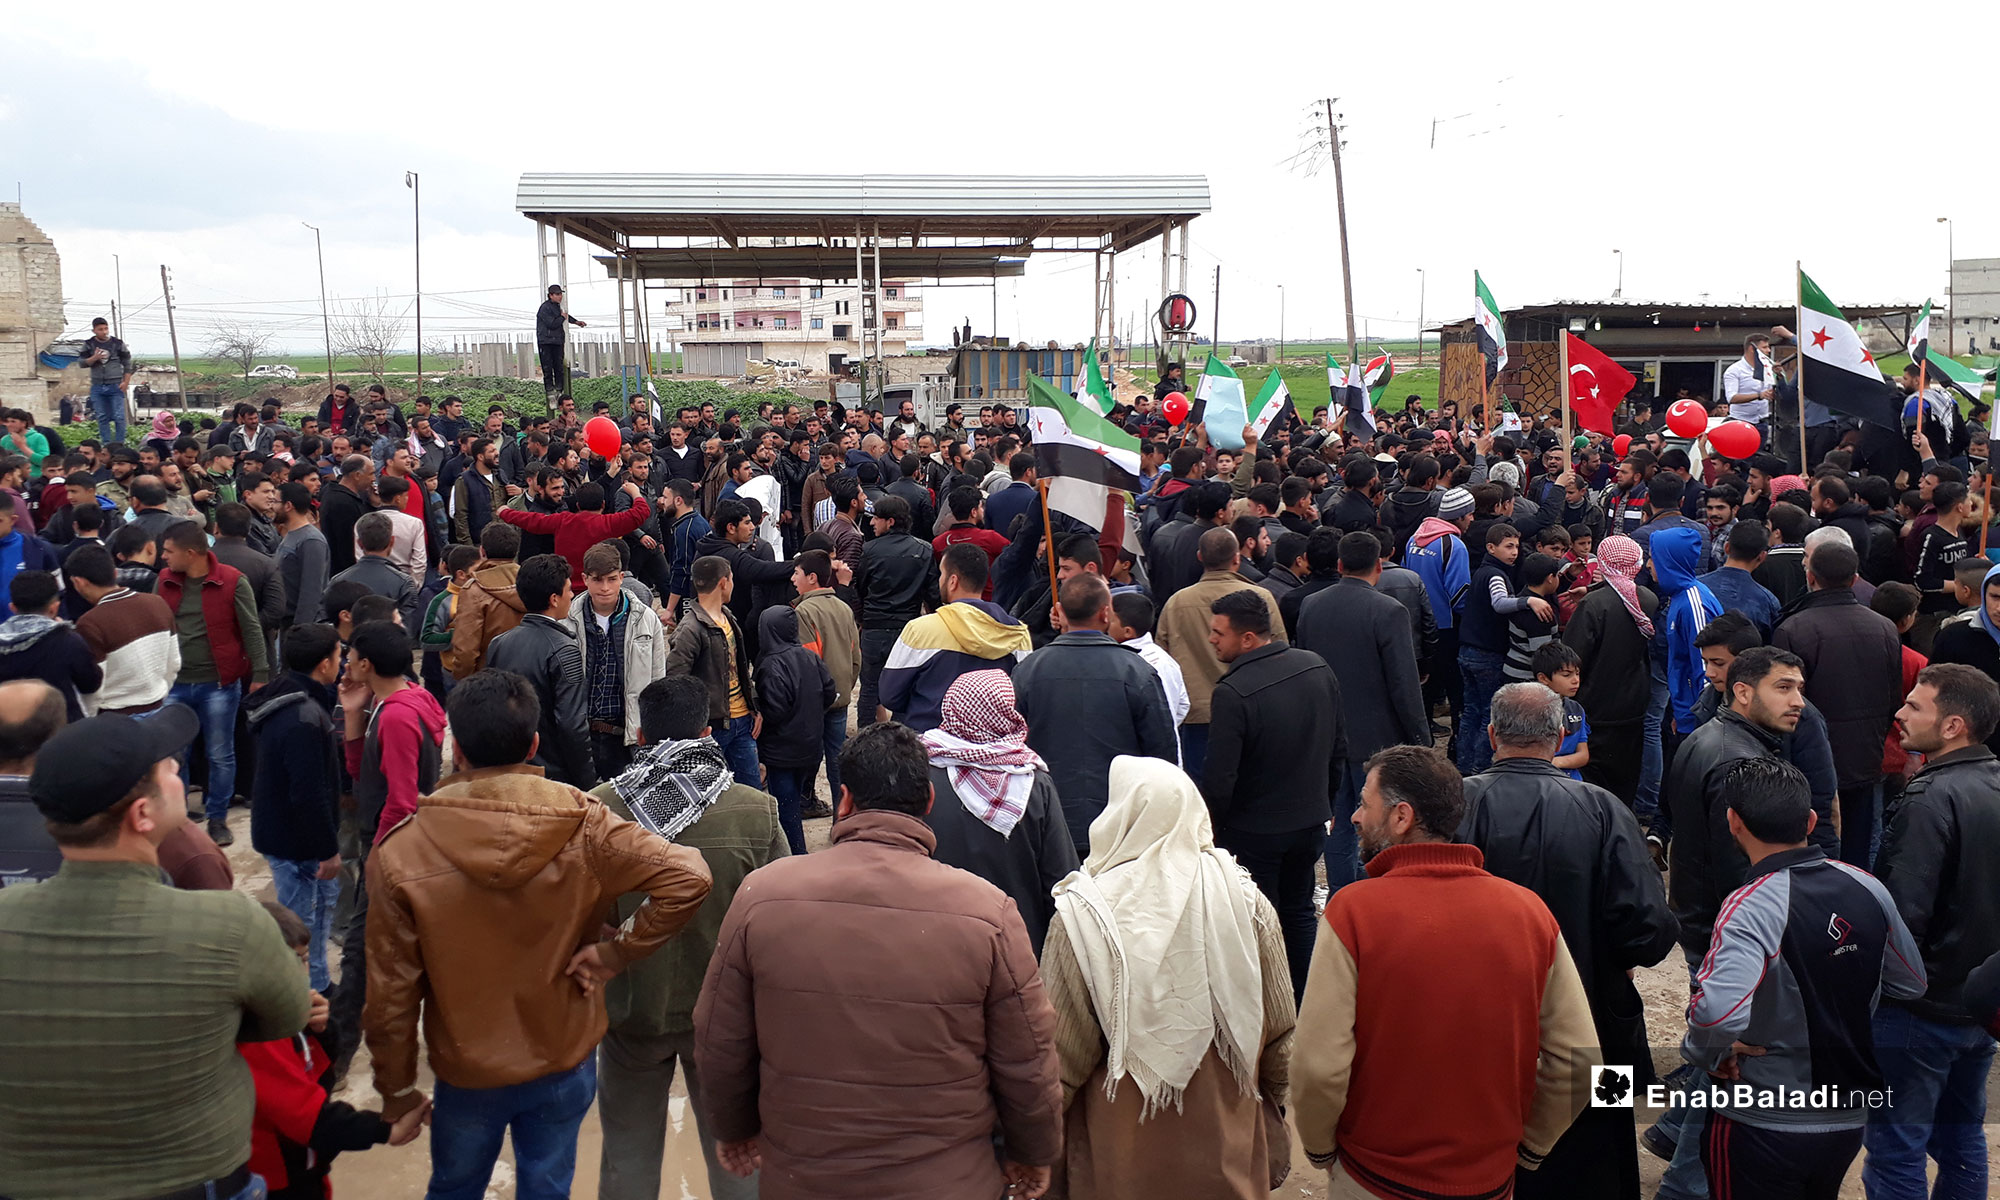 Protests against the corruption of the local councils in Souran district, northern rural Aleppo – April 5, 2019 (Enab Baladi)